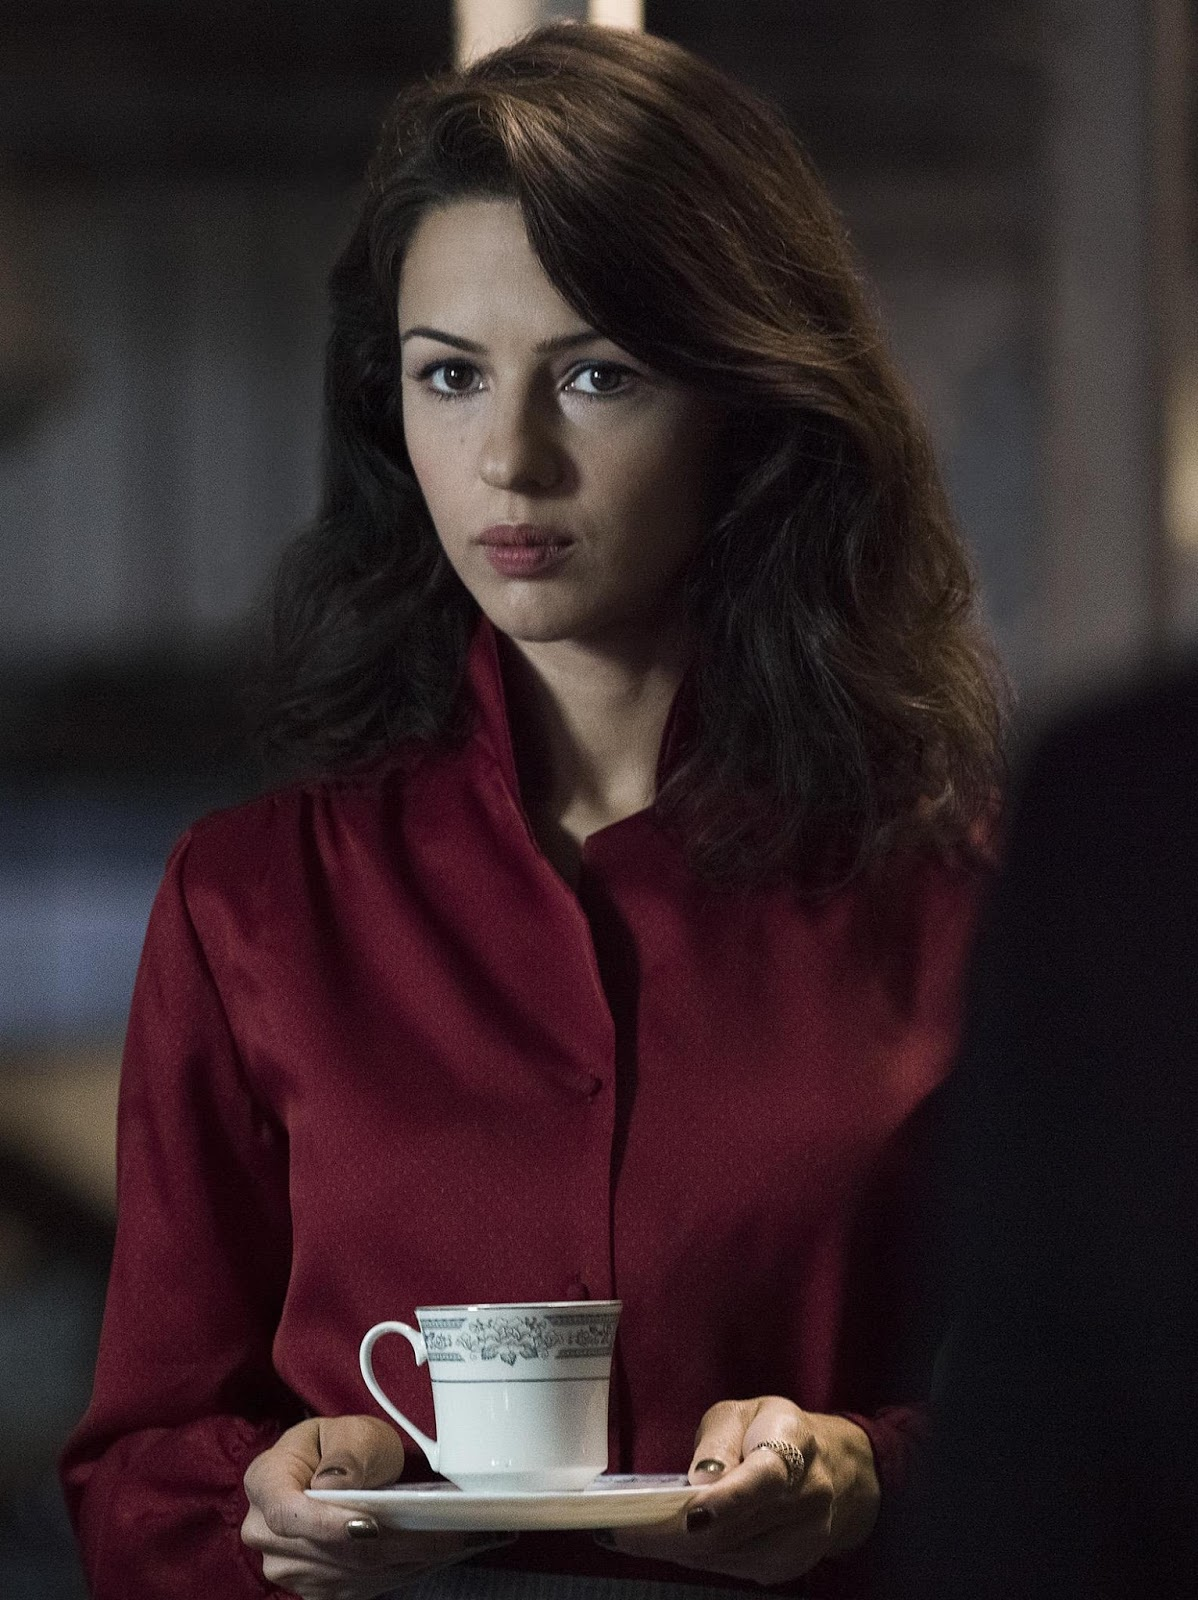 Russian girl from the americans